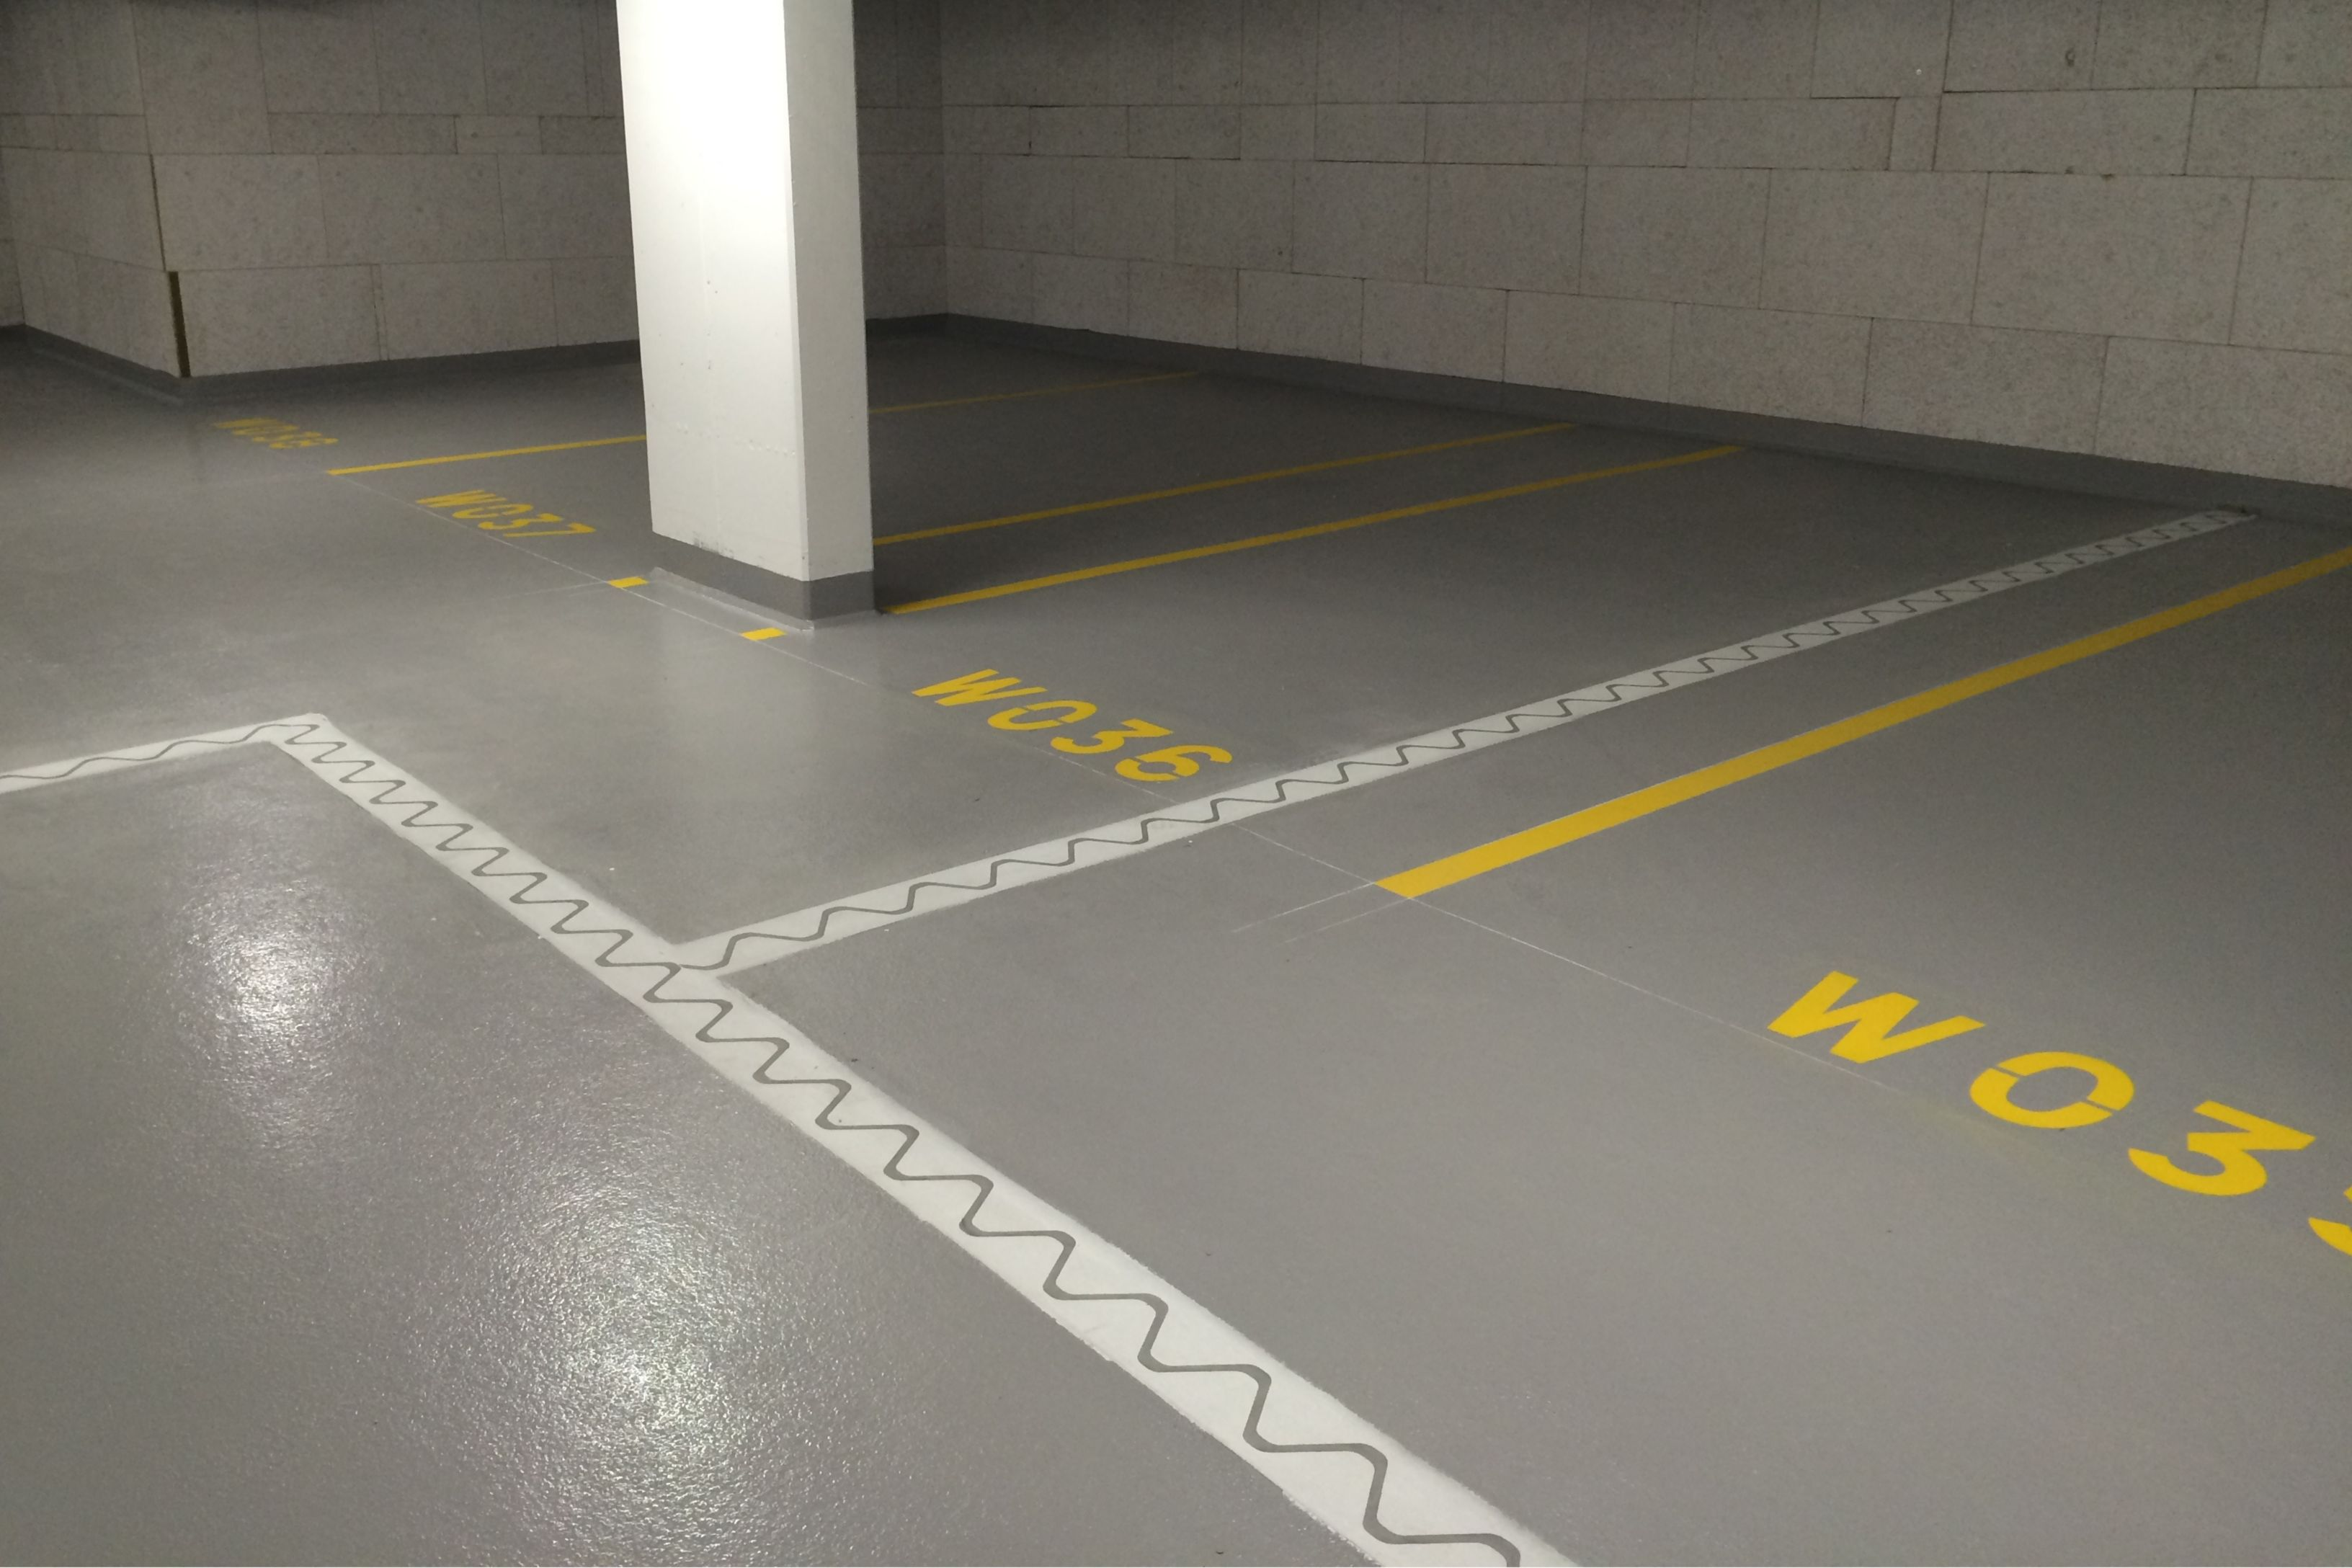 The floor of a car parking garage in Linz, Austria